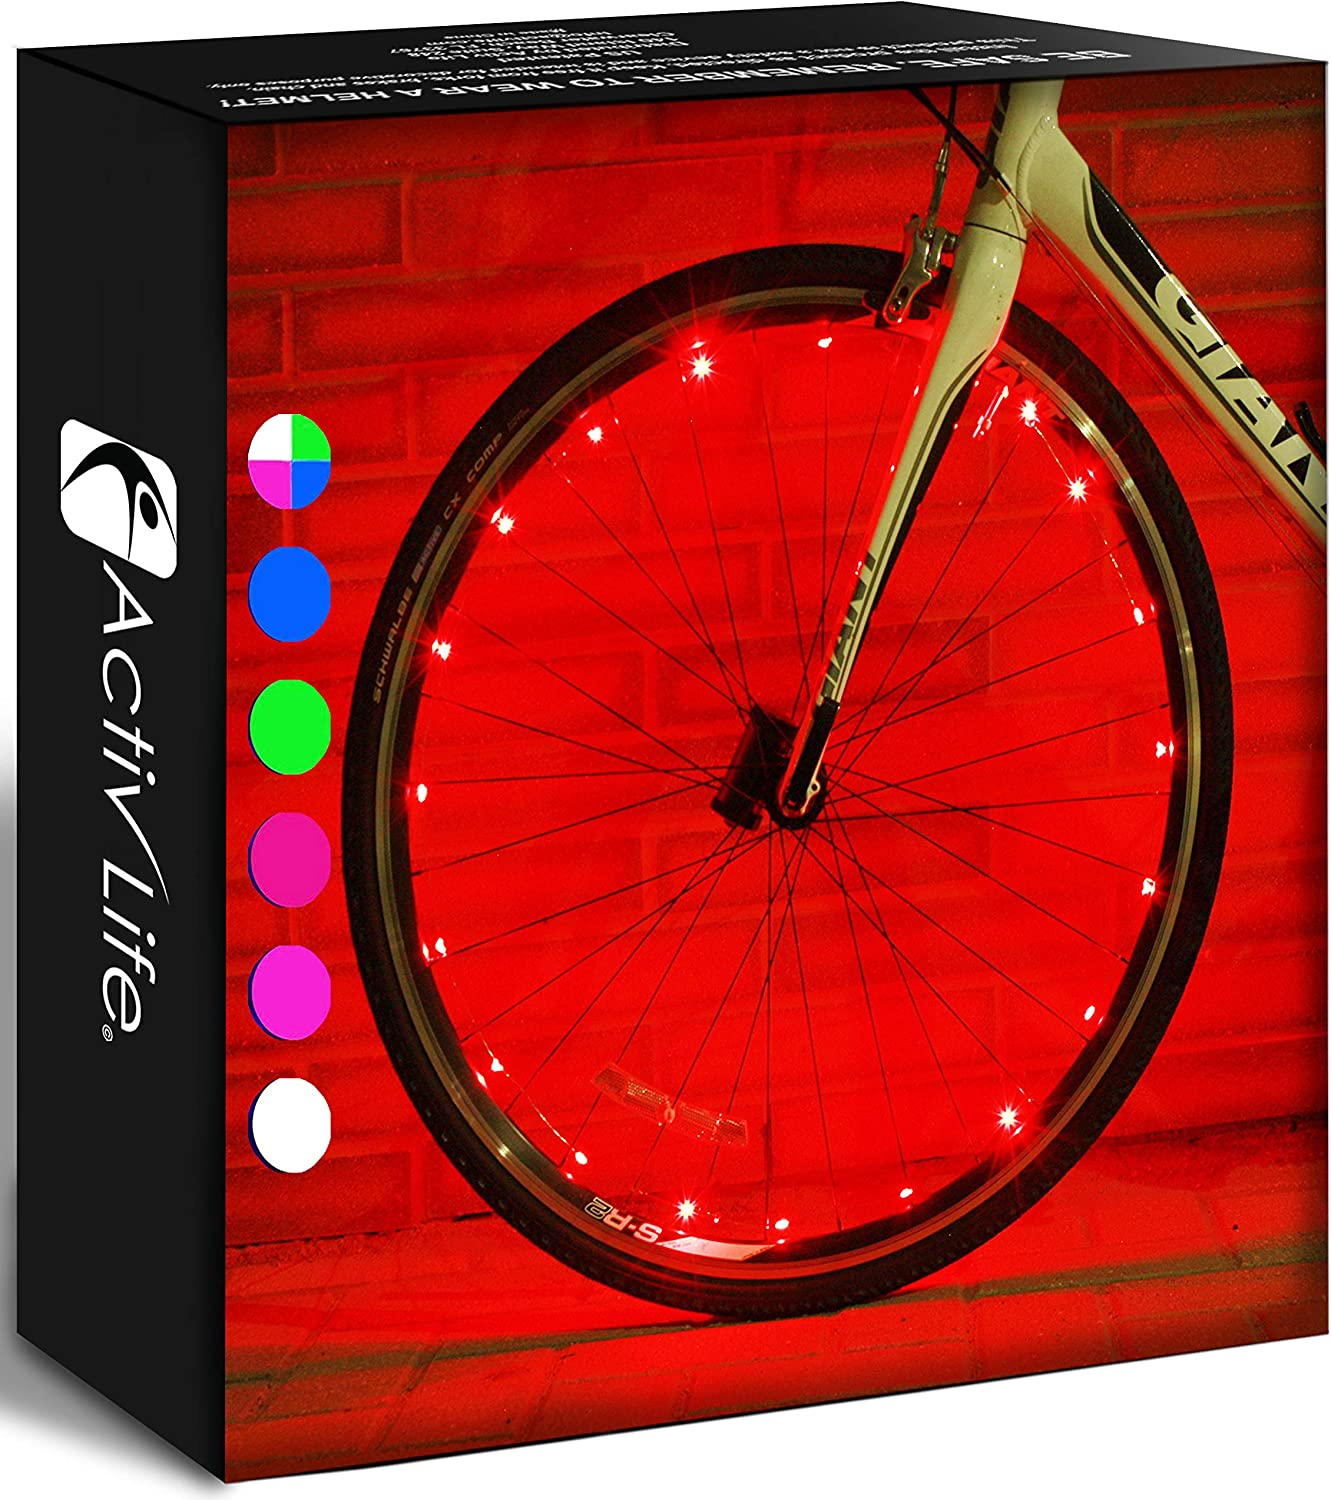 Get 100/% Brighter and Visible from All Angles for Ultimate Safety /& Style Activ Life 2 Tyre Pack LED Bike Wheel Lights with Batteries Included